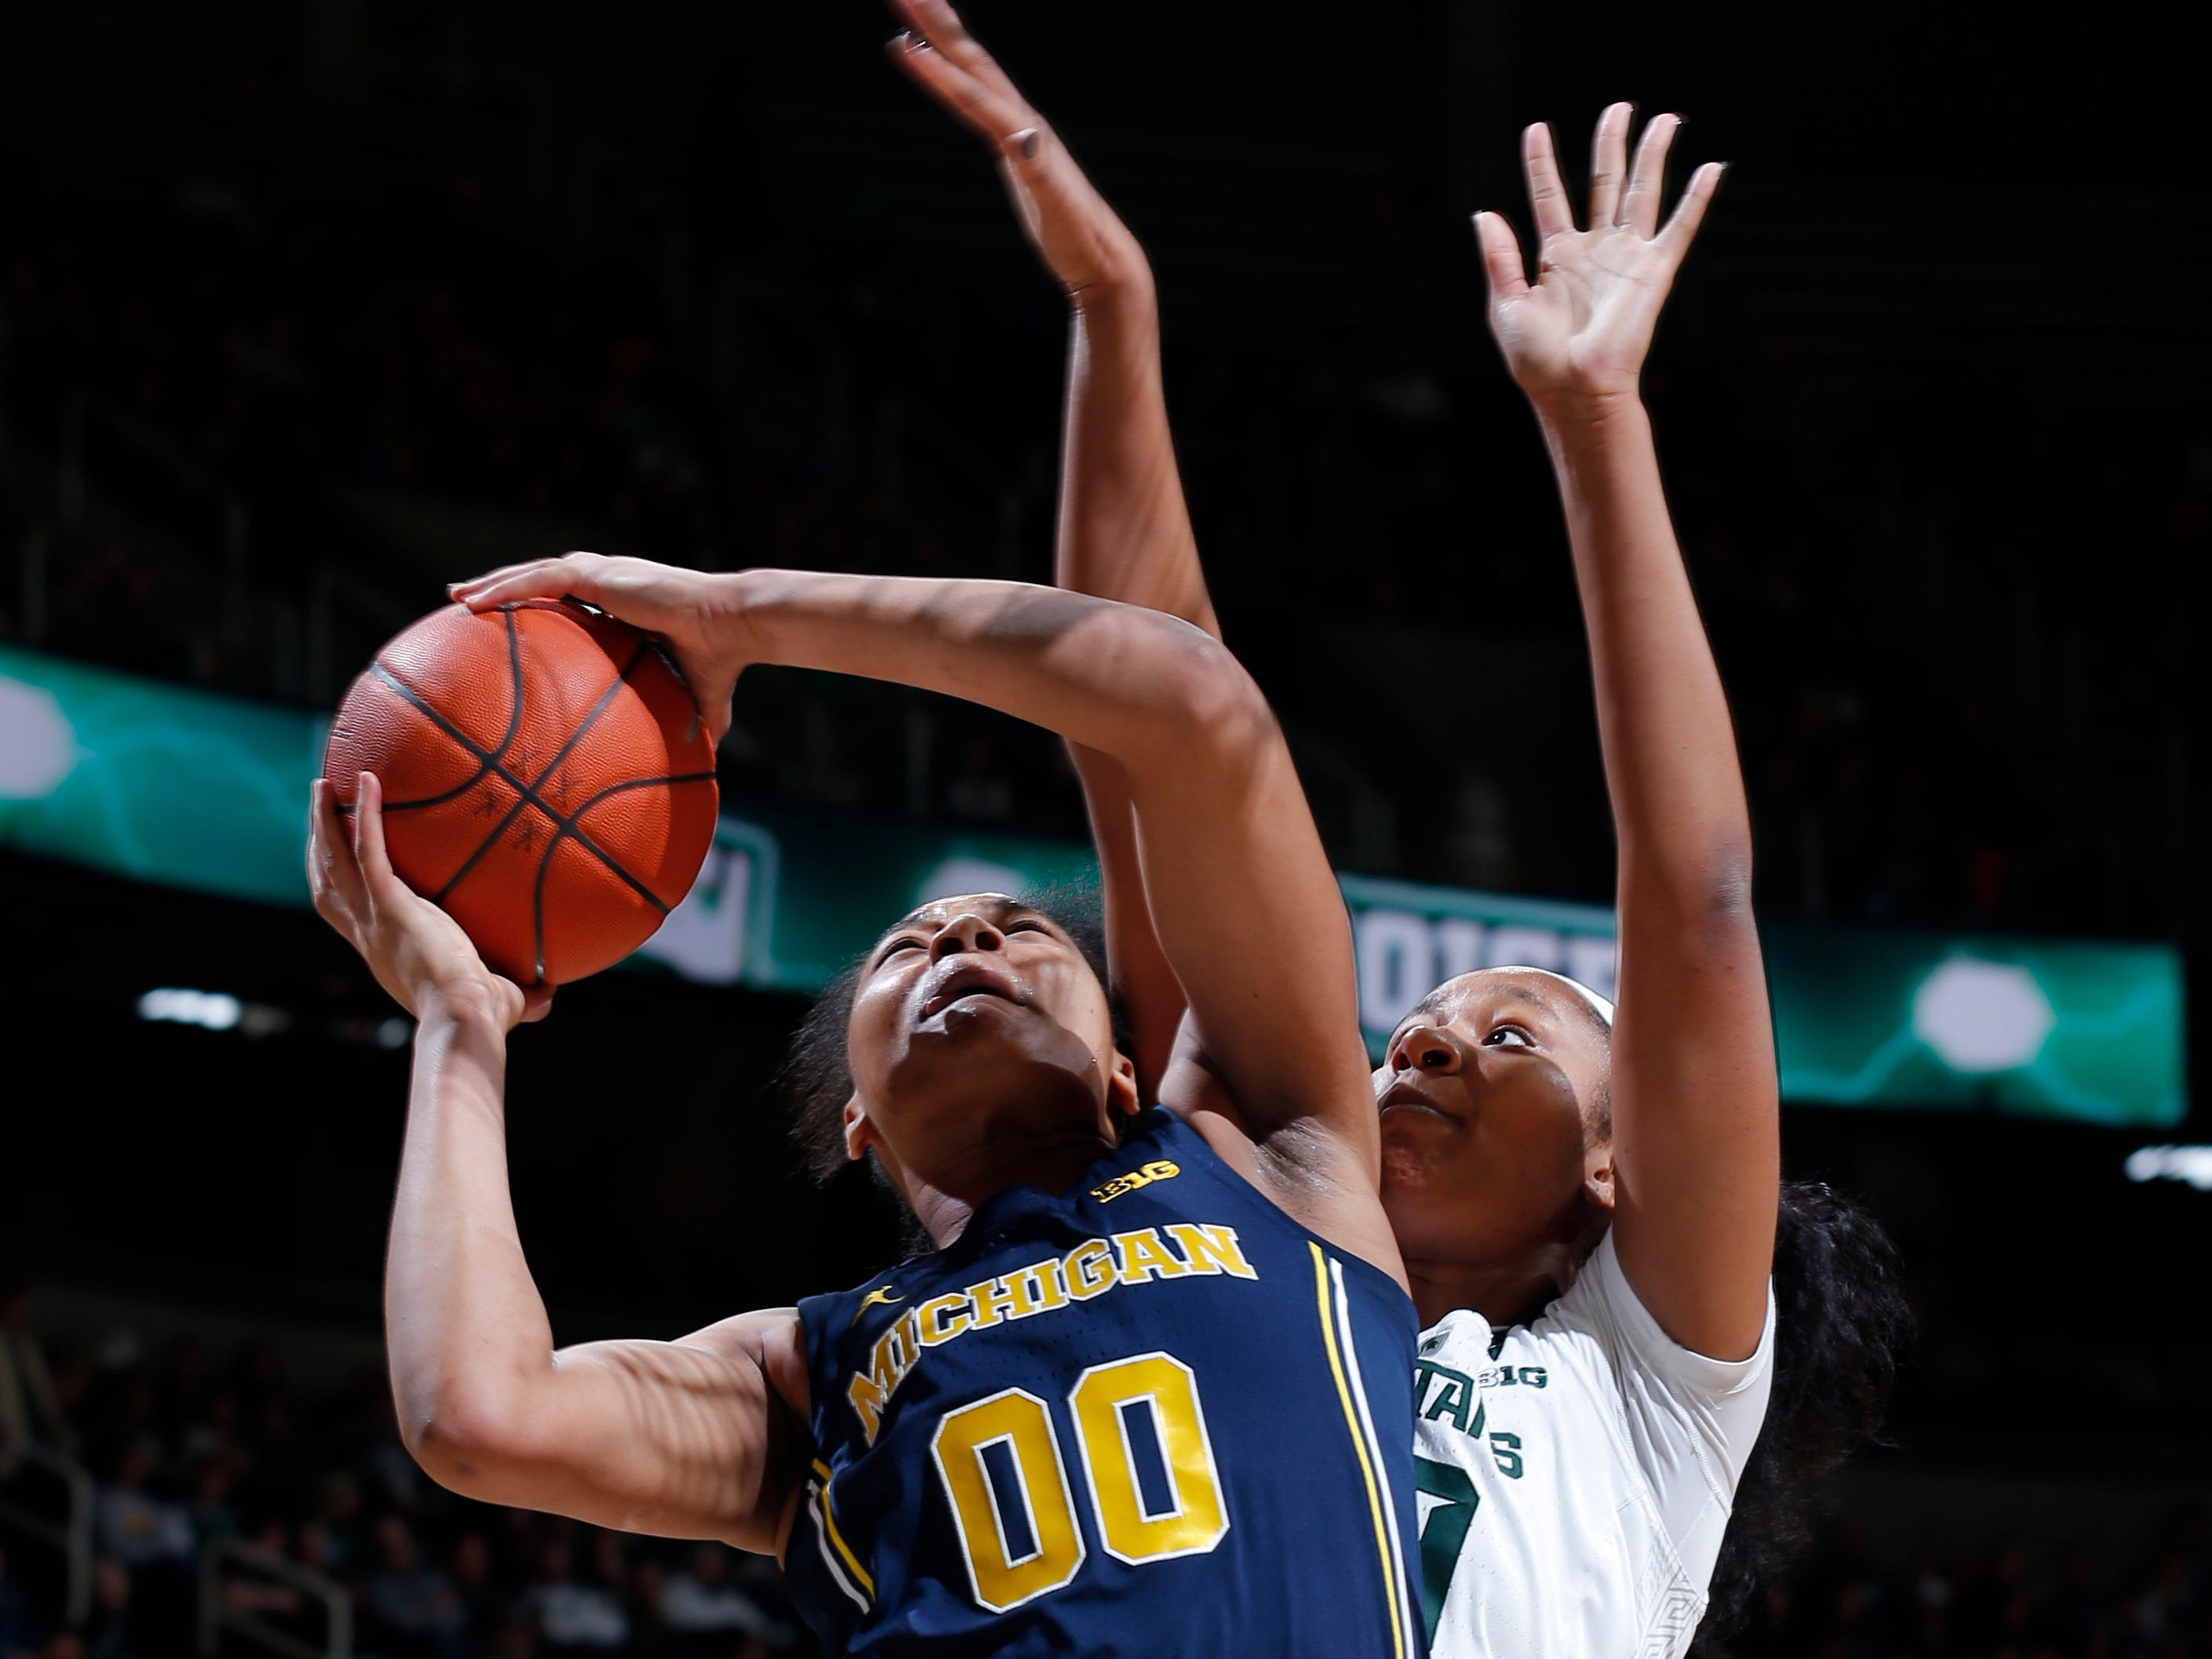 Michigan's Naz Hillman, left, shoots against Michigan State's Sidney Cooks during the first quarter.